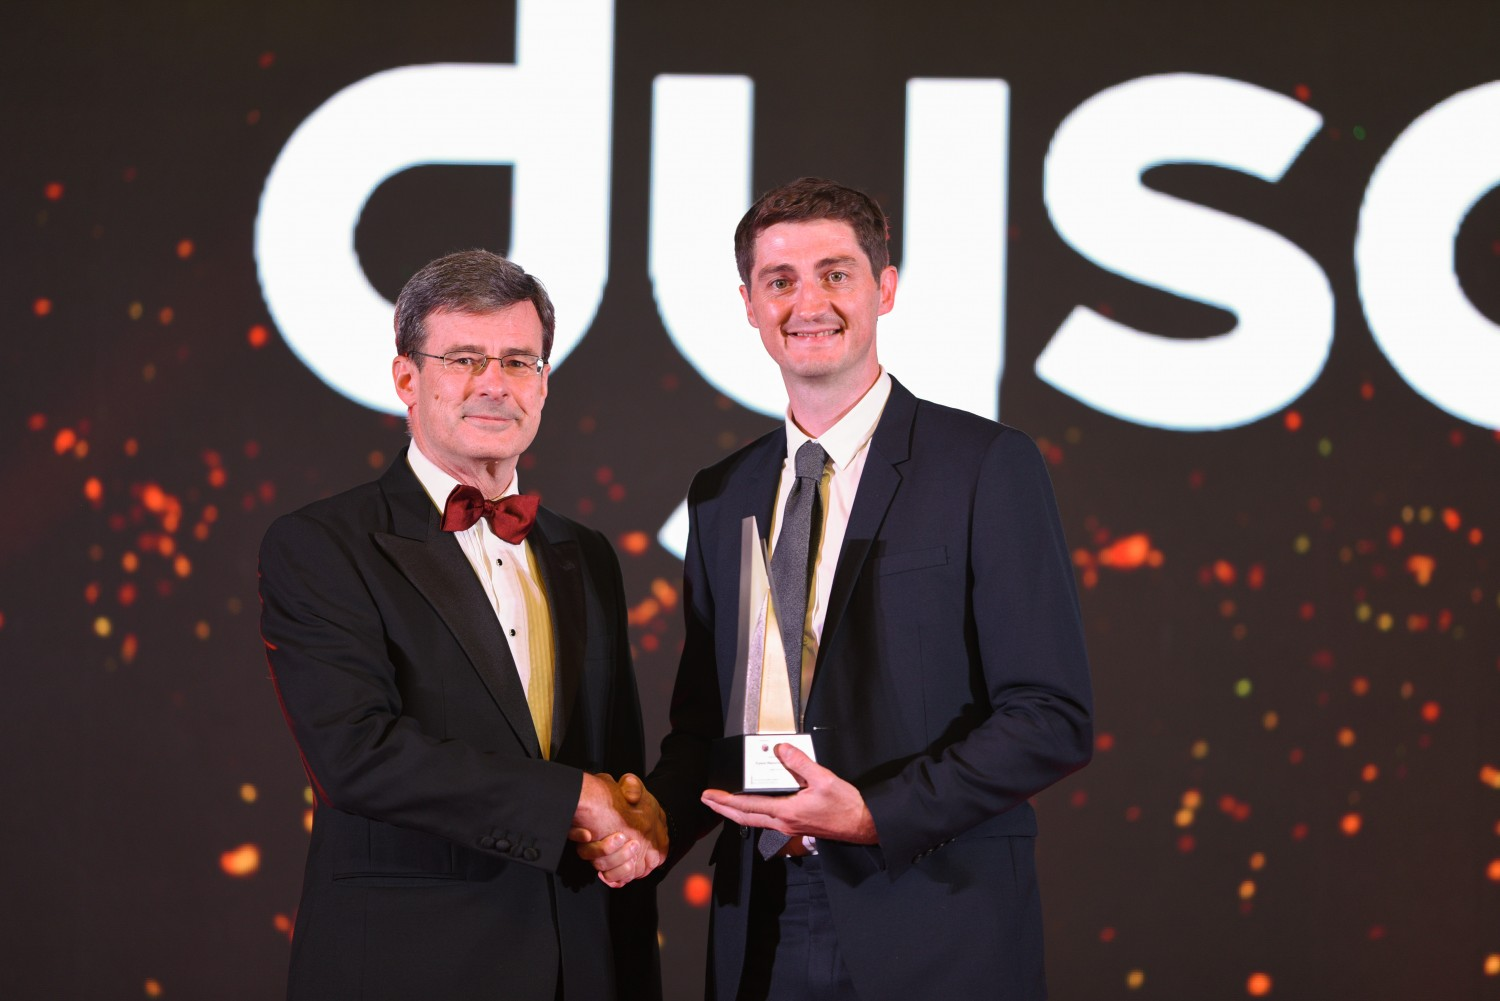 Picture L-R: James Gossip, Deputy CEO of HSBC Malaysia presenting the award to Scott Maguire, VP of Engineering and Operations, Dyson Manufacturing Malaysia.